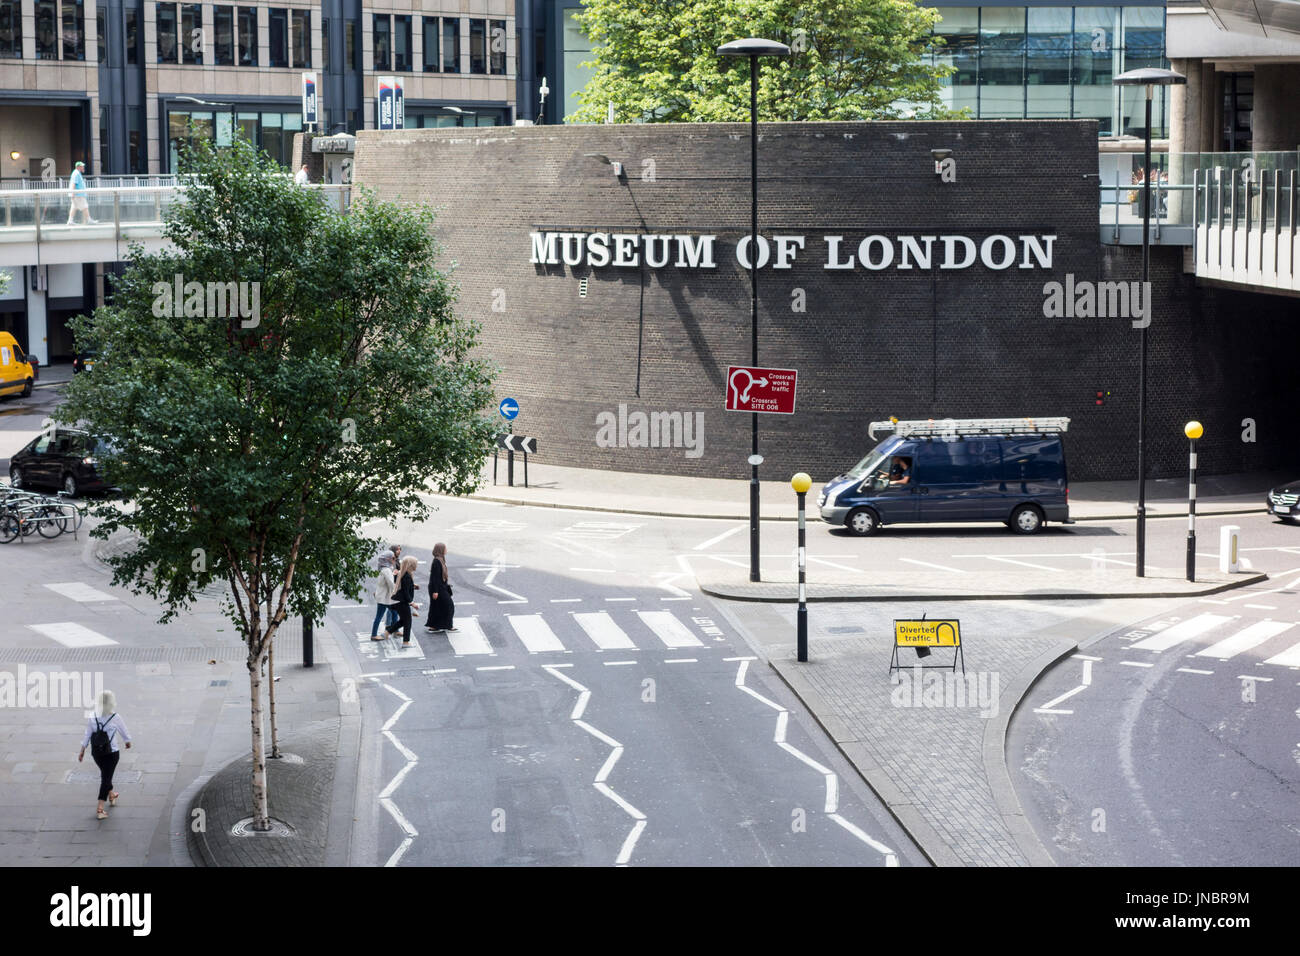 Museum of London, London Wall, City of London, UK - Stock Image